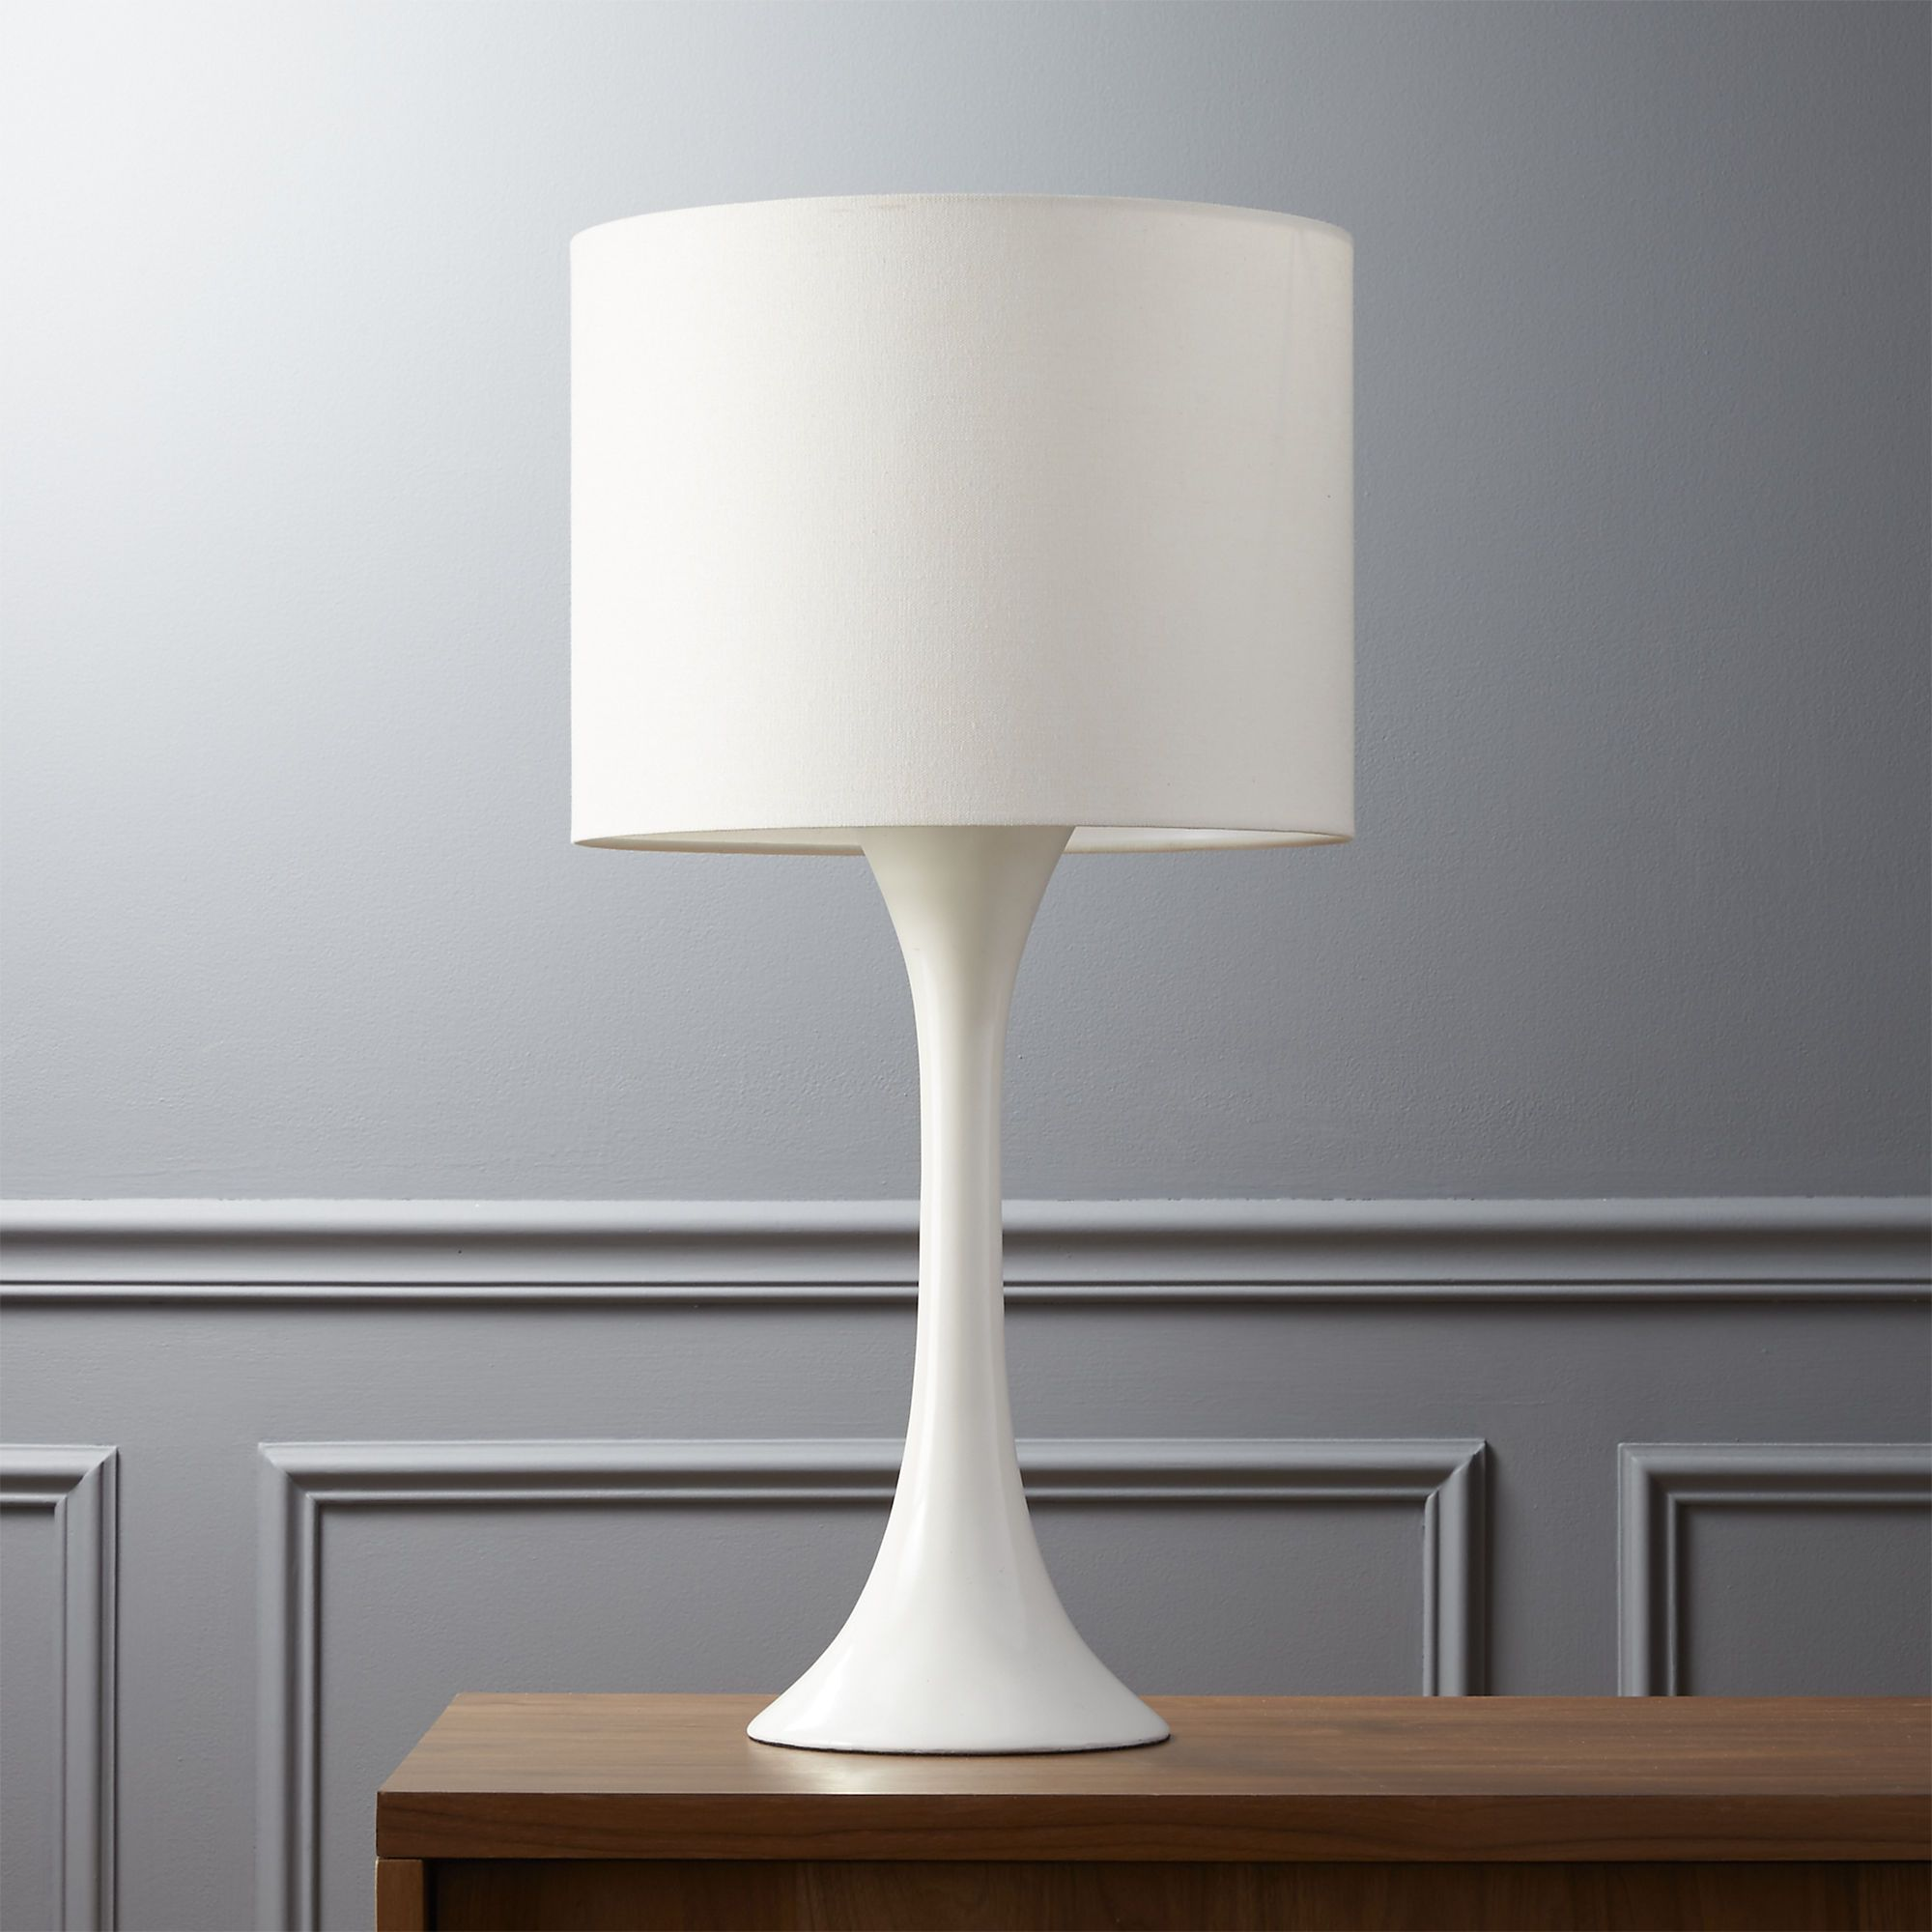 Superieur Light It Up. With Modern Table Lamps, Floor Lamps, Living Room And Bedroom